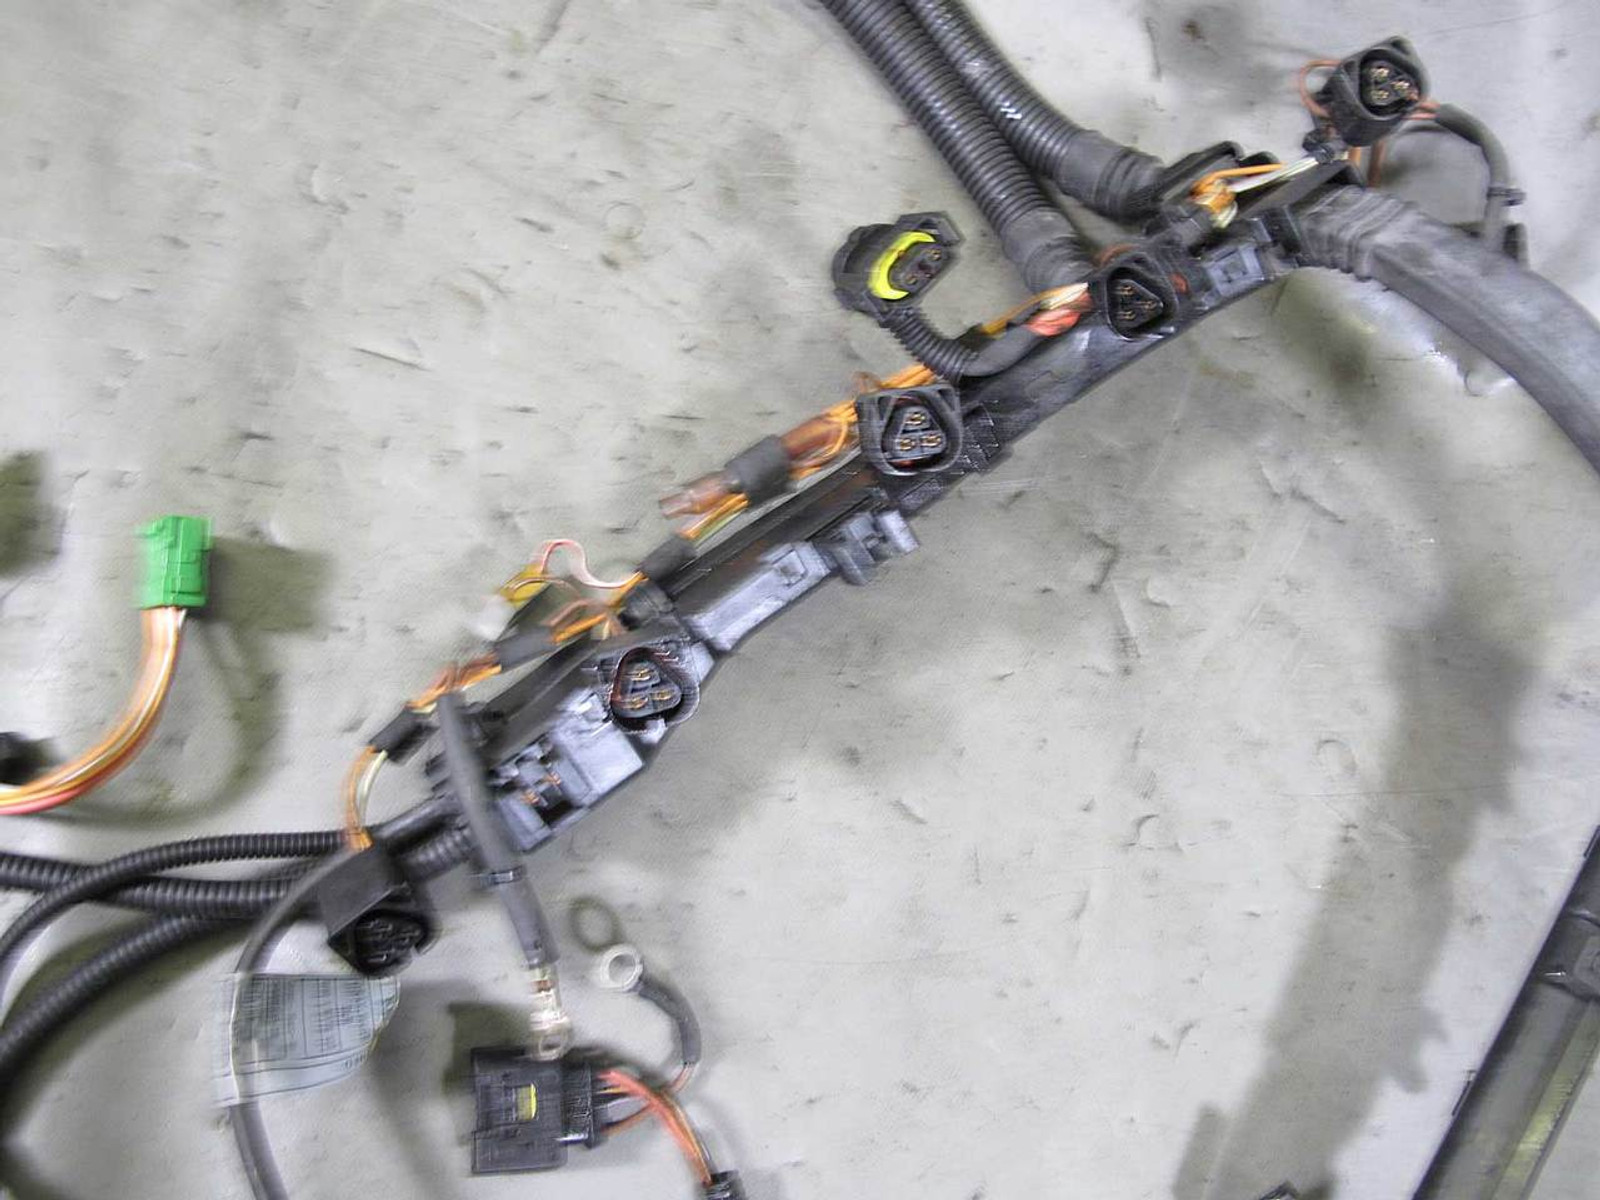 Bmw E83 X3 Sav N52 Late Ignition Coil Fuel Injector Engine Wiring Harness 07 10 Img